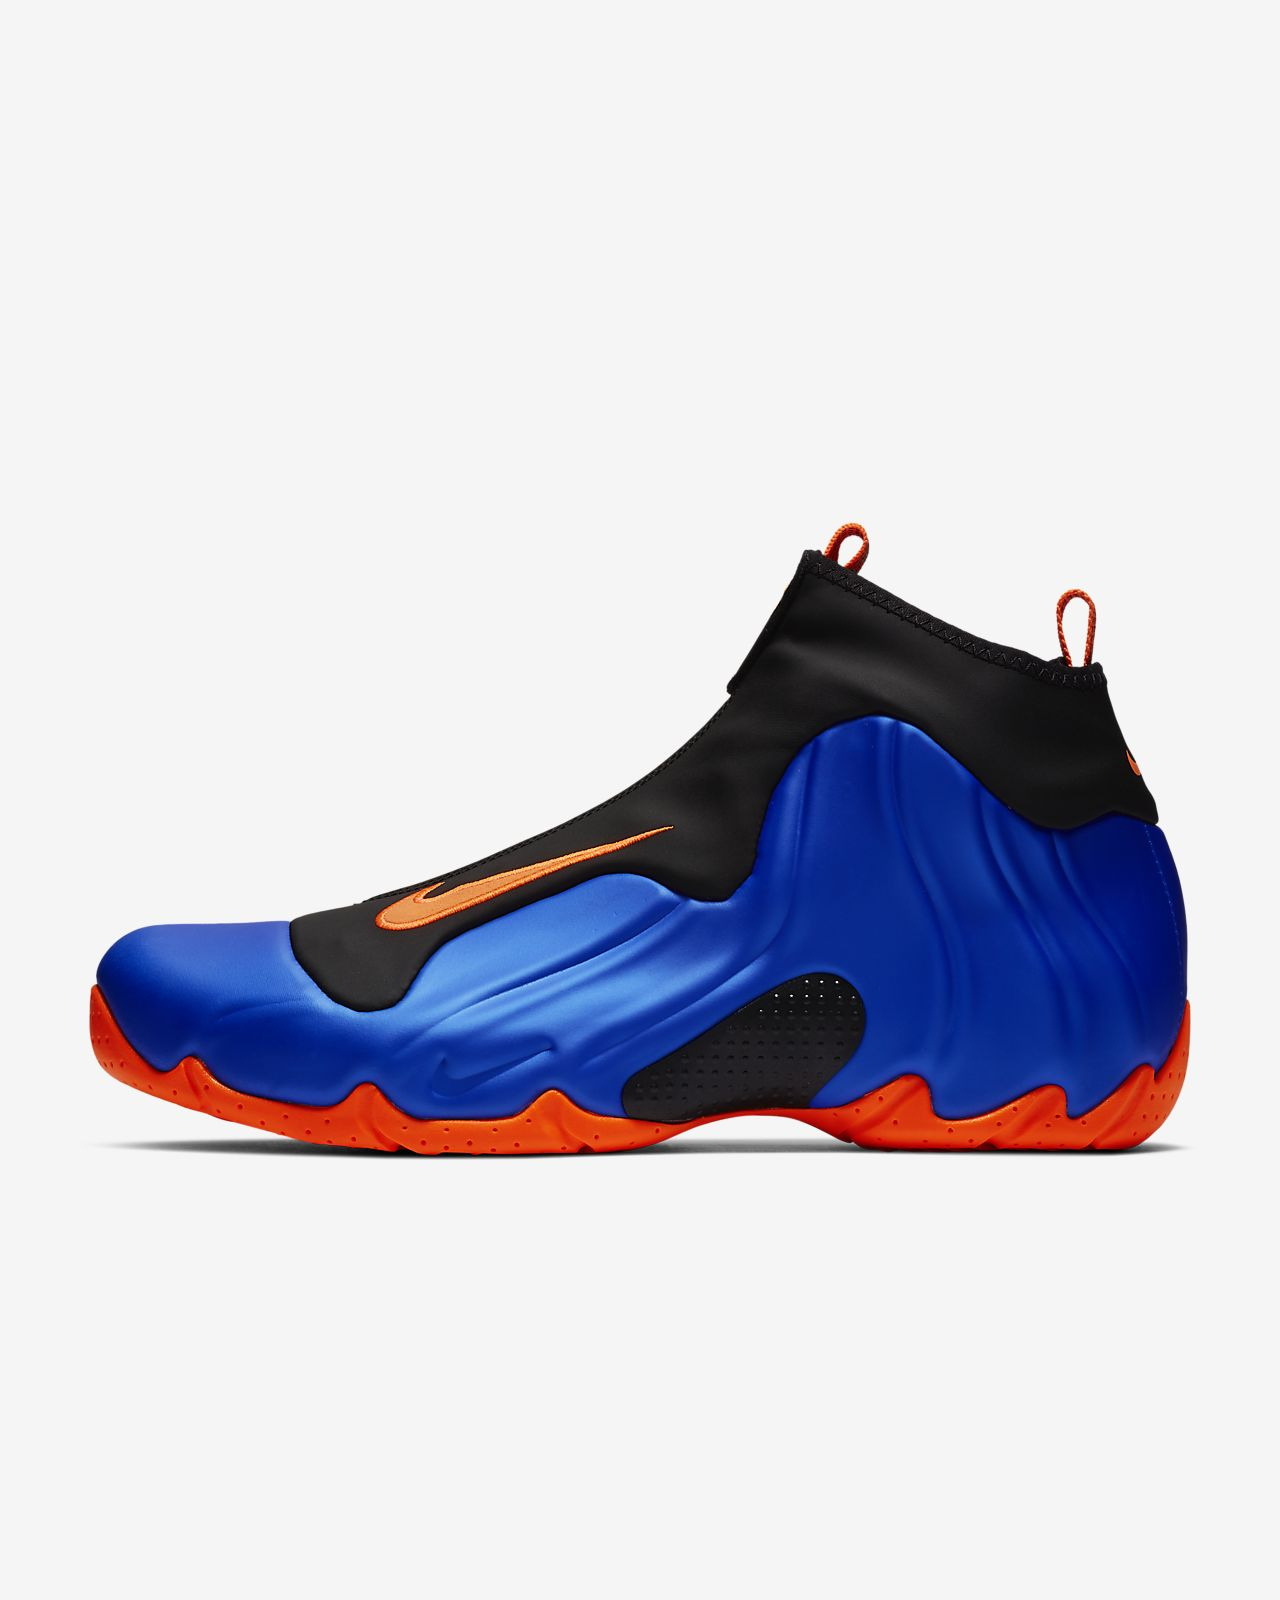 eb1adde3d94550 Nike Air Flightposite Men s Shoe. Nike.com